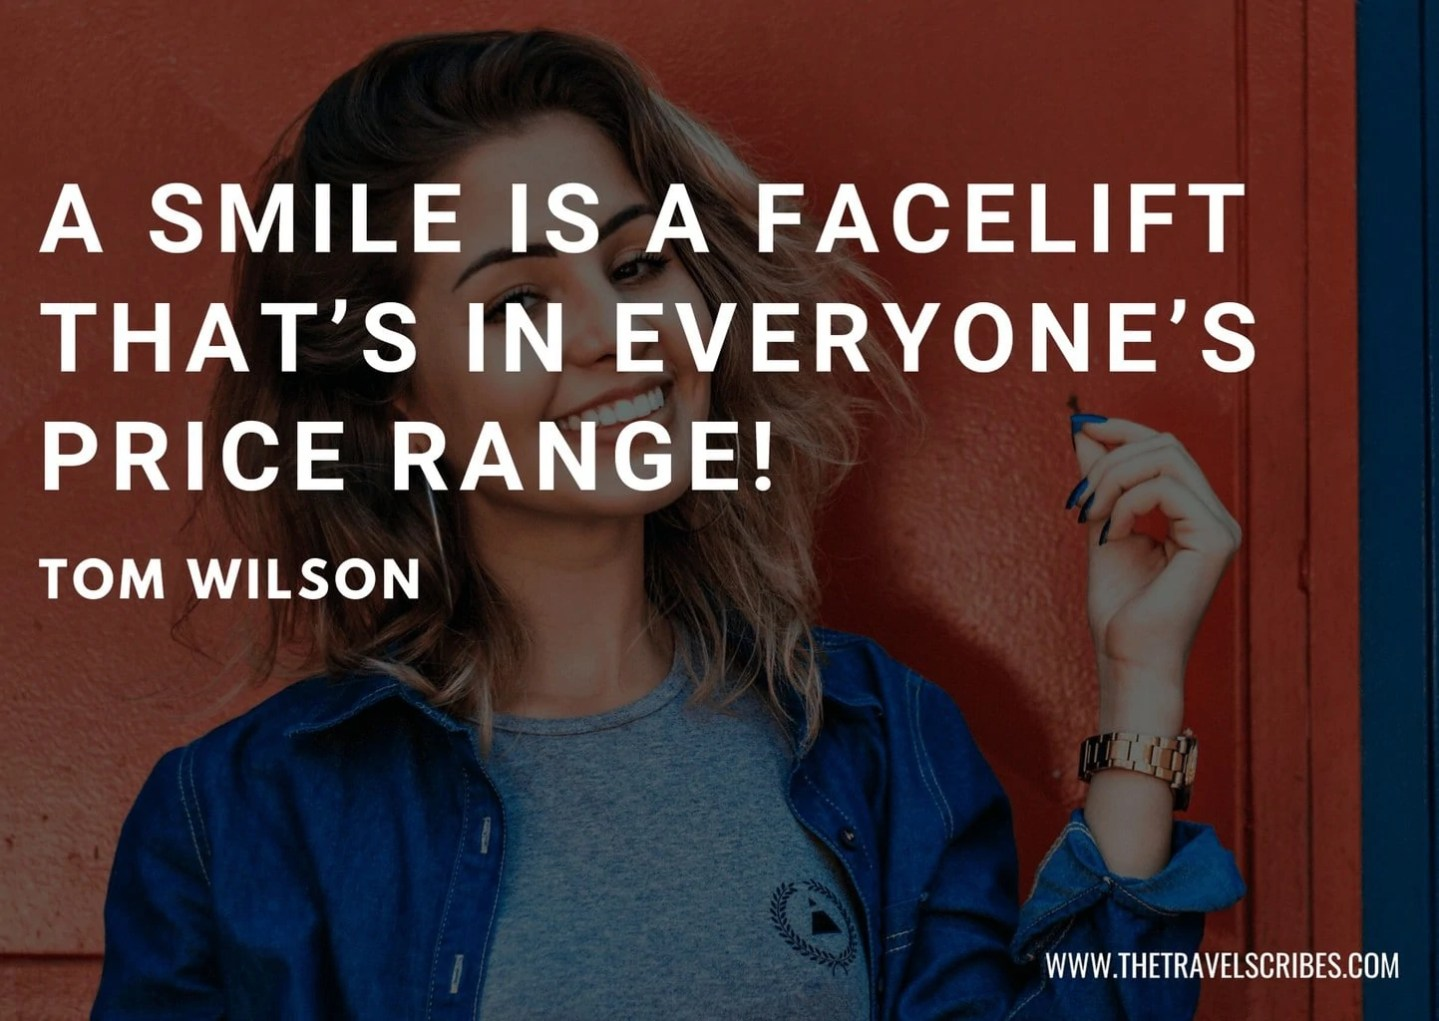 Funny quote about smile